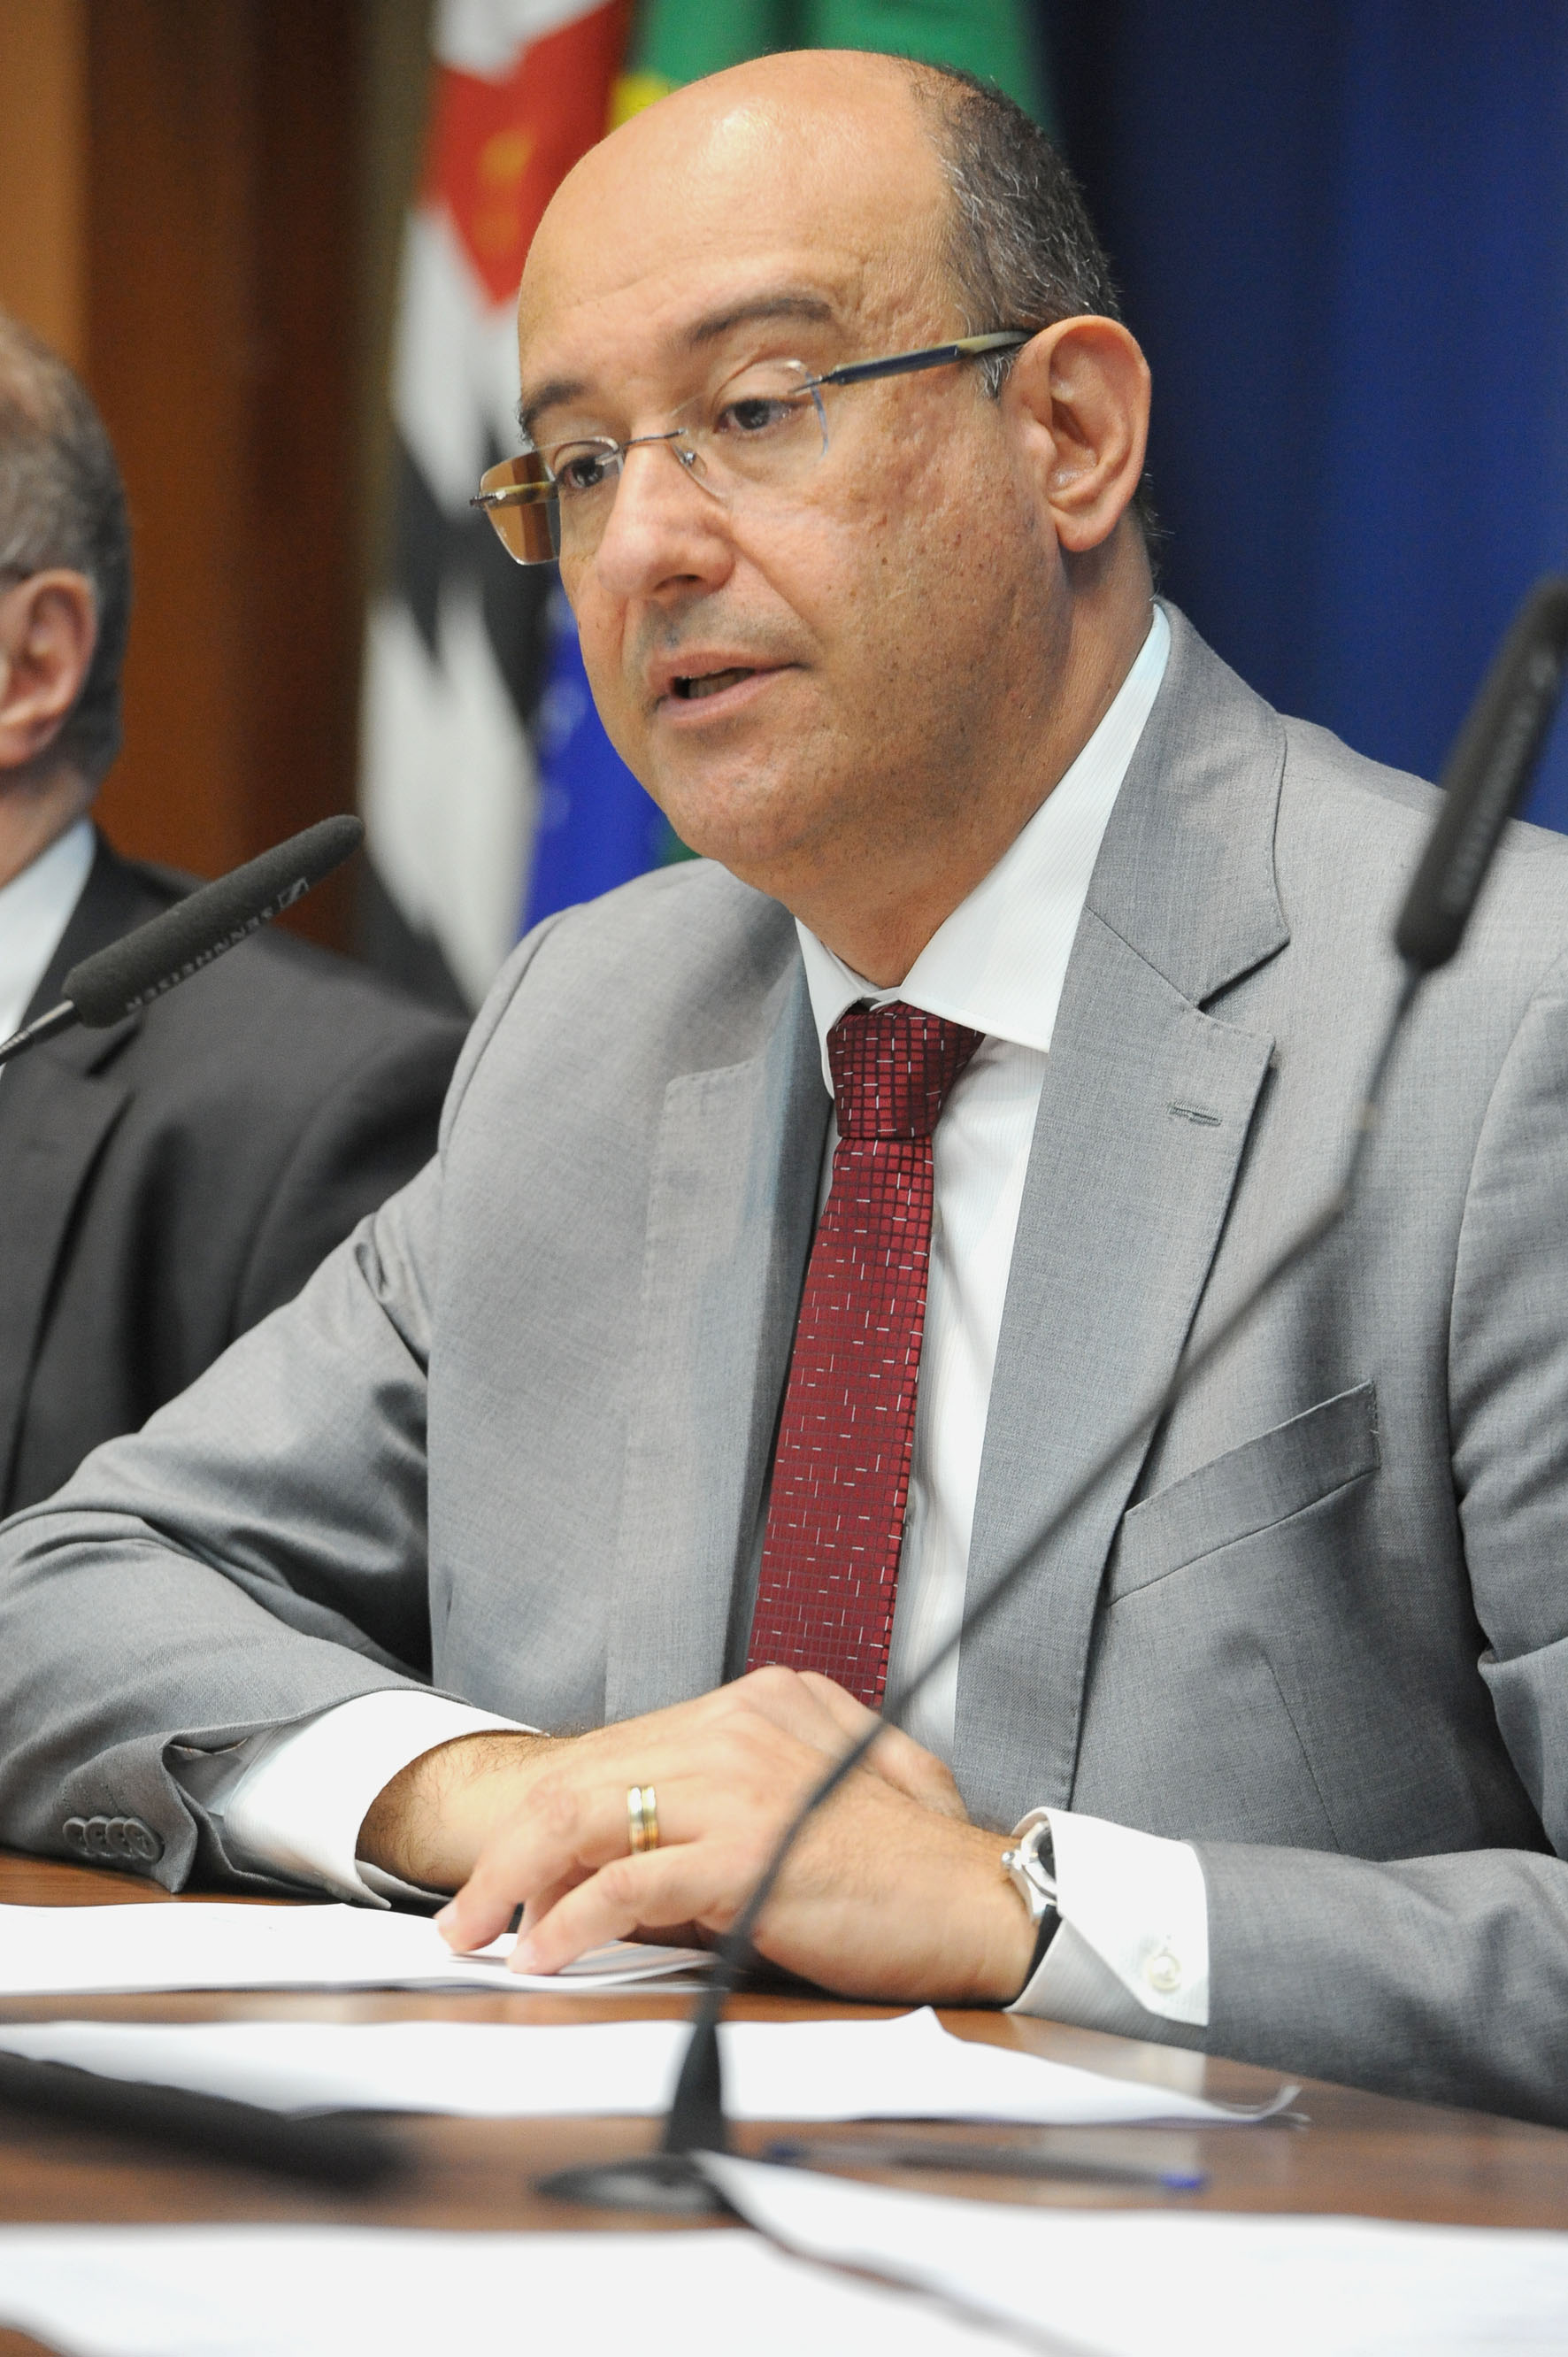 Gianpaolo Poggio Smanio<a style='float:right' href='https://www3.al.sp.gov.br/repositorio/noticia/N-06-2018/fg224627.jpg' target=_blank><img src='/_img/material-file-download-white.png' width='14px' alt='Clique para baixar a imagem'></a>